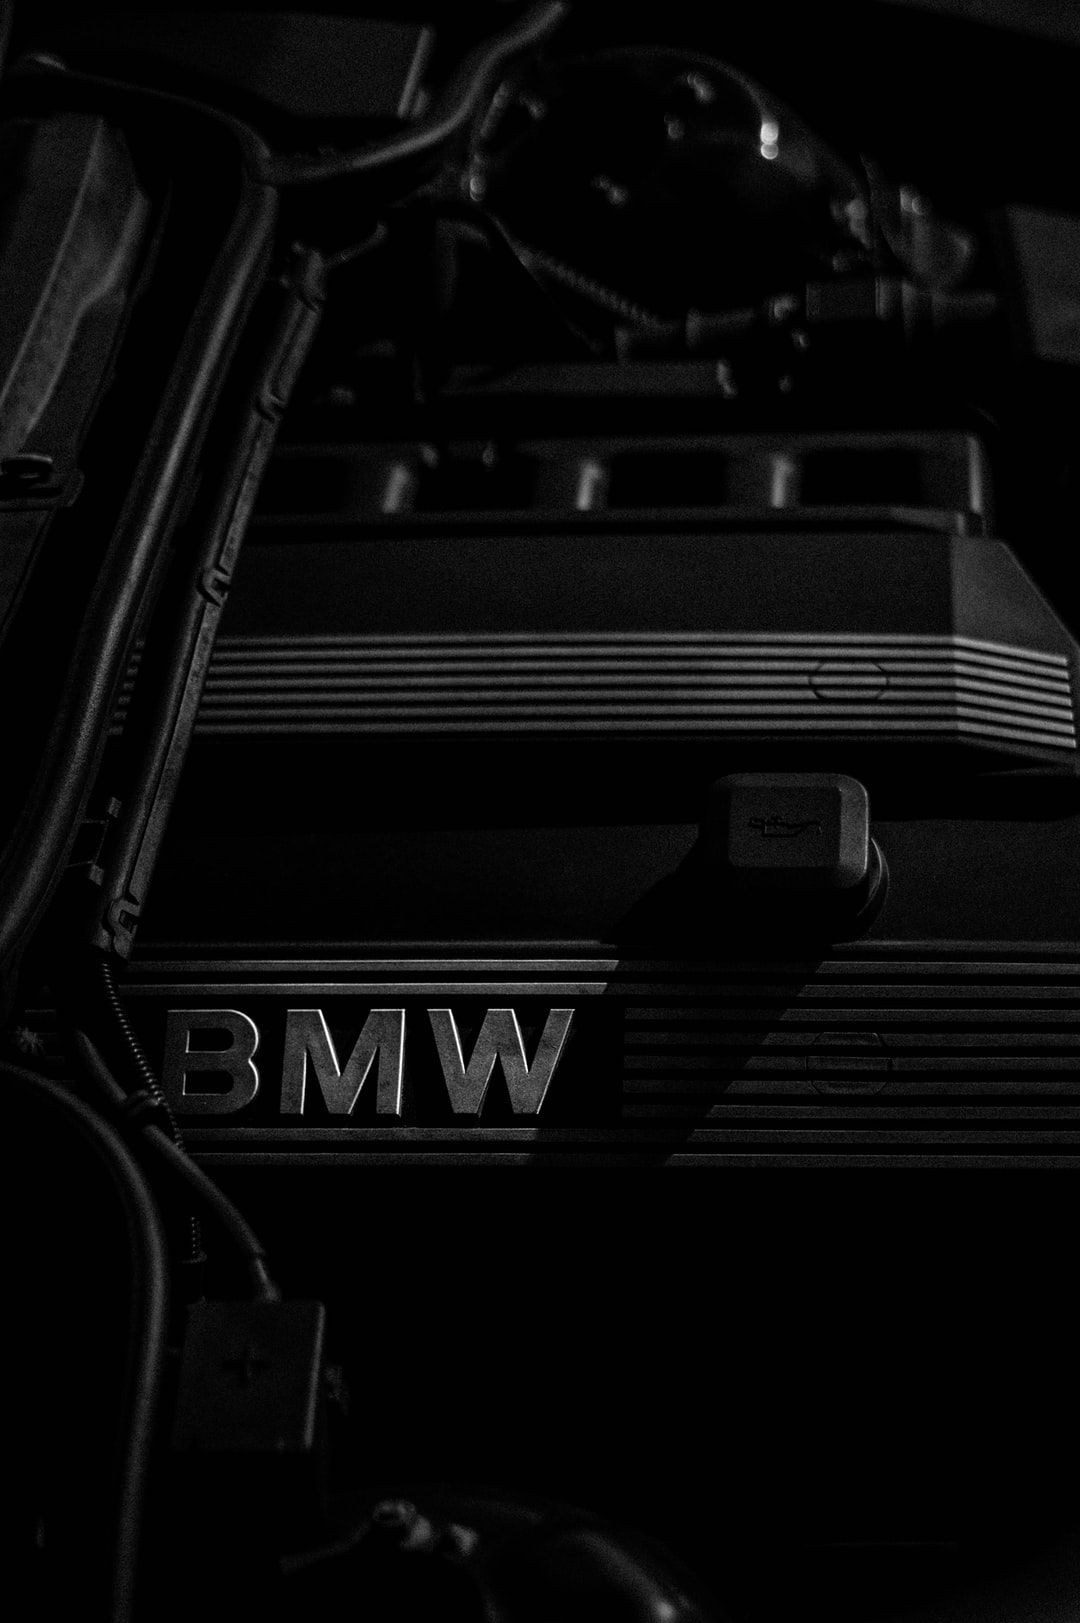 Grayscale Photography Of Bmw Emblem Photo Free Black And White Image On Unsplash Bmw Learn Piano Learn Piano Chords